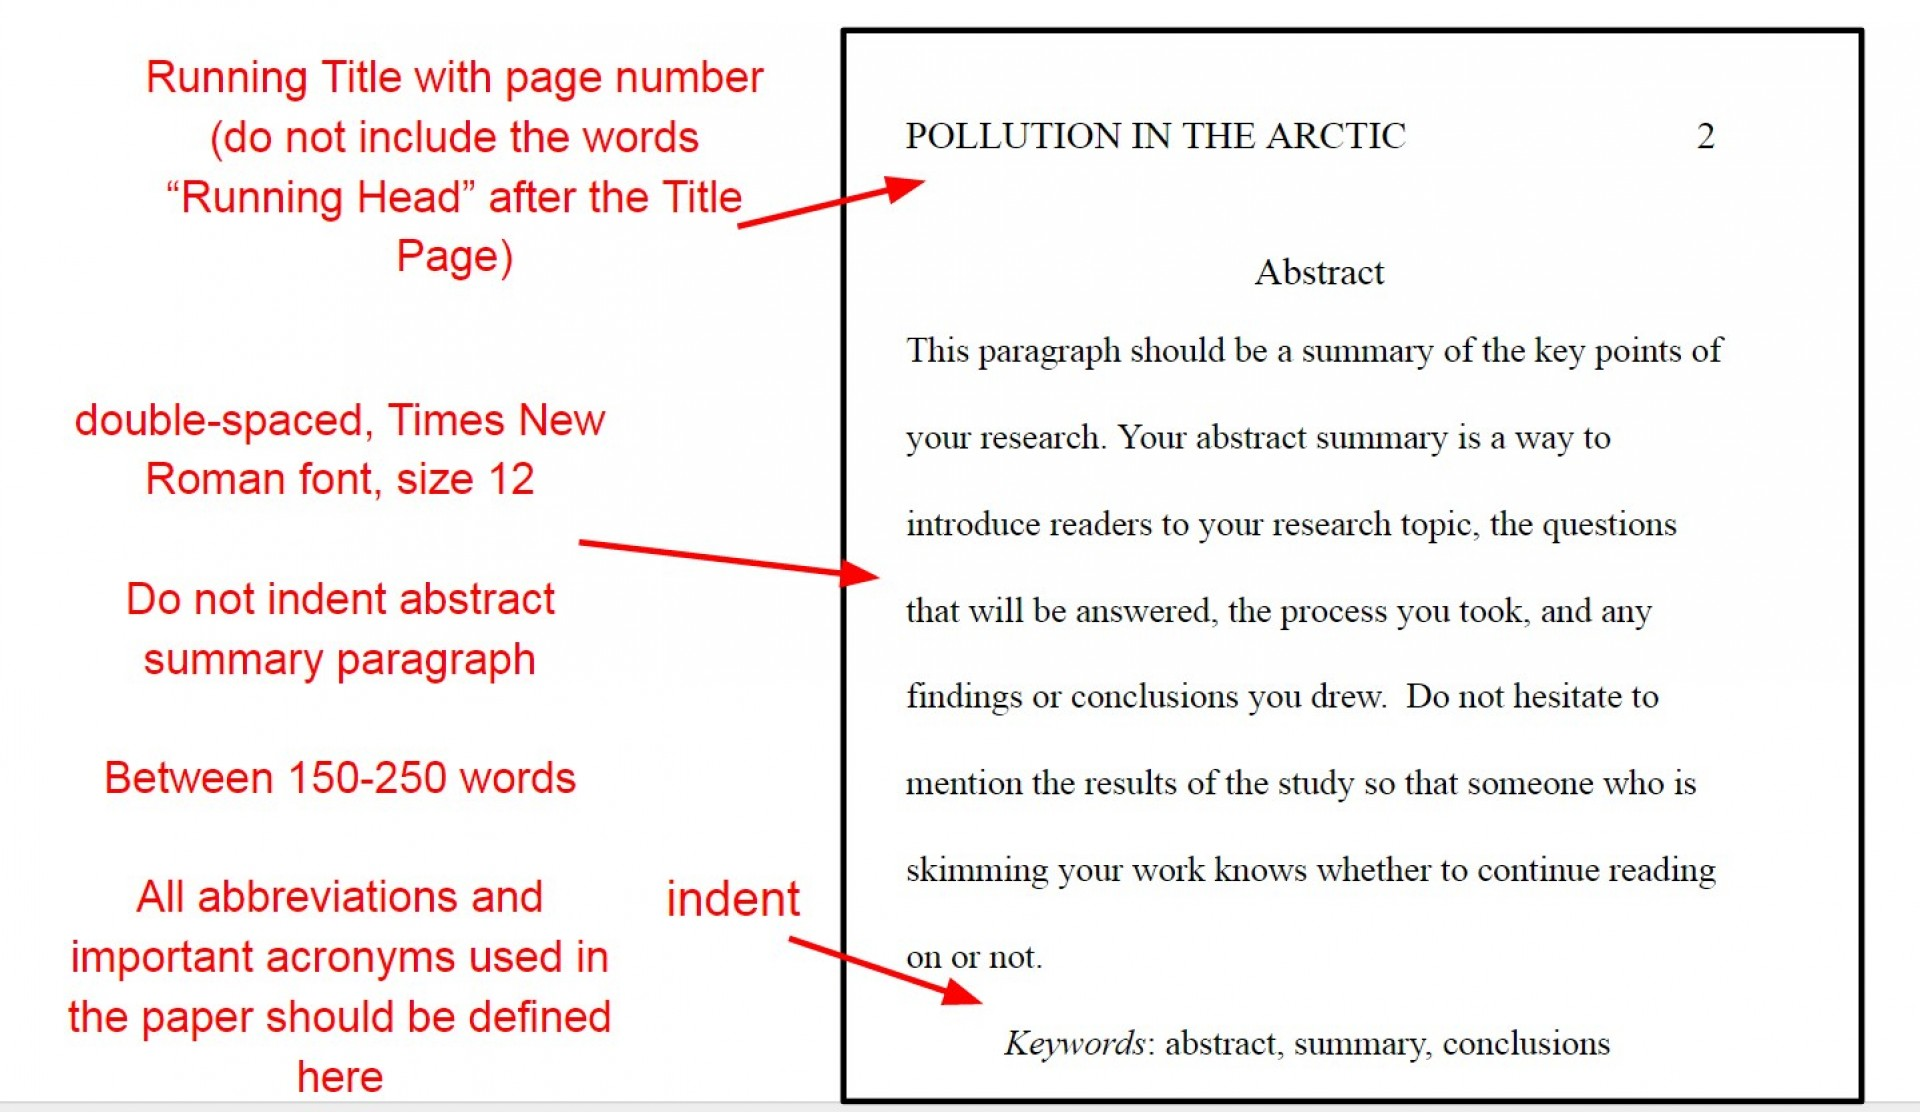 008 Apaabstractyo Research Paper Format Stunning Apa Outline Example Style Sample Psychology Writing A 6th Edition 1920